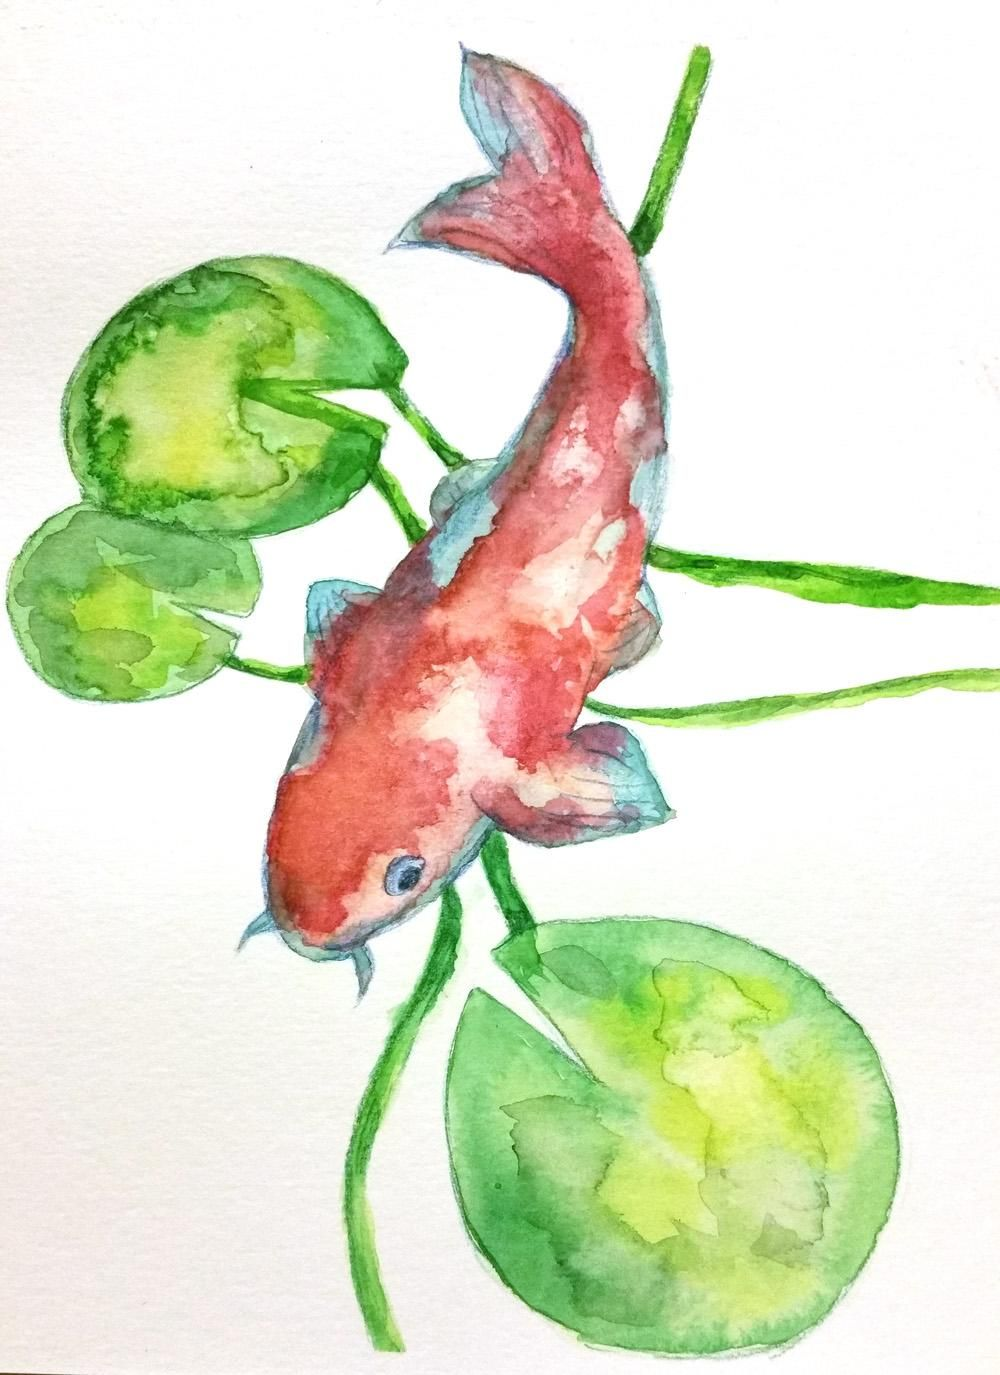 Watercolor to Procreate Koi Fish - image 2 - student project